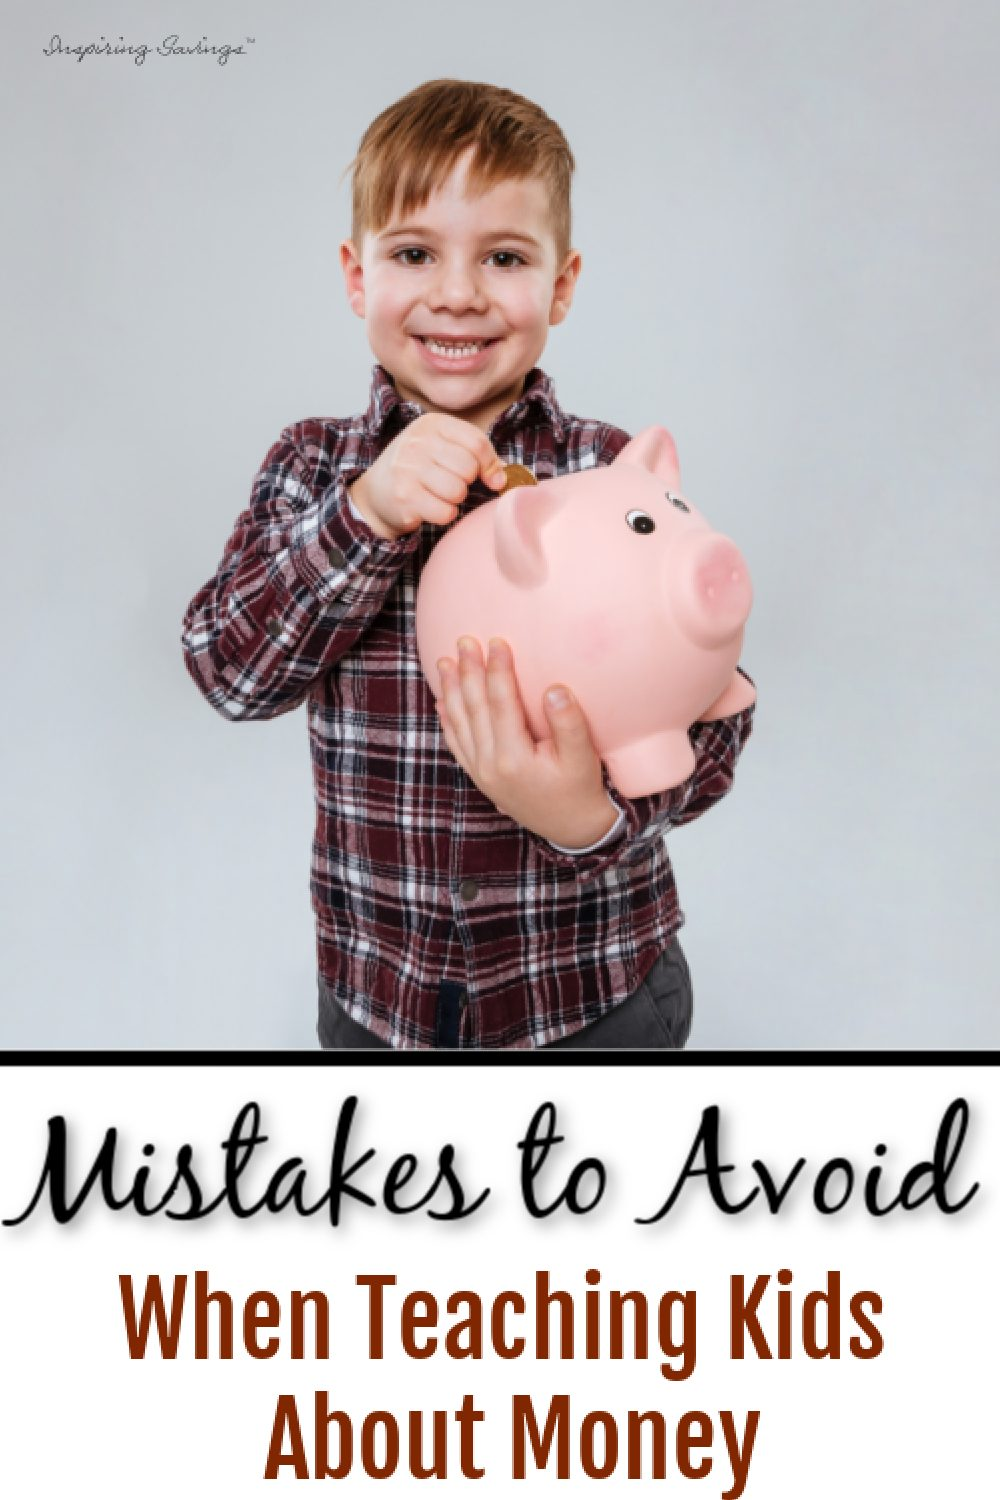 Boy holding piggy bank - Mistakes to avoid when teaching kids about money